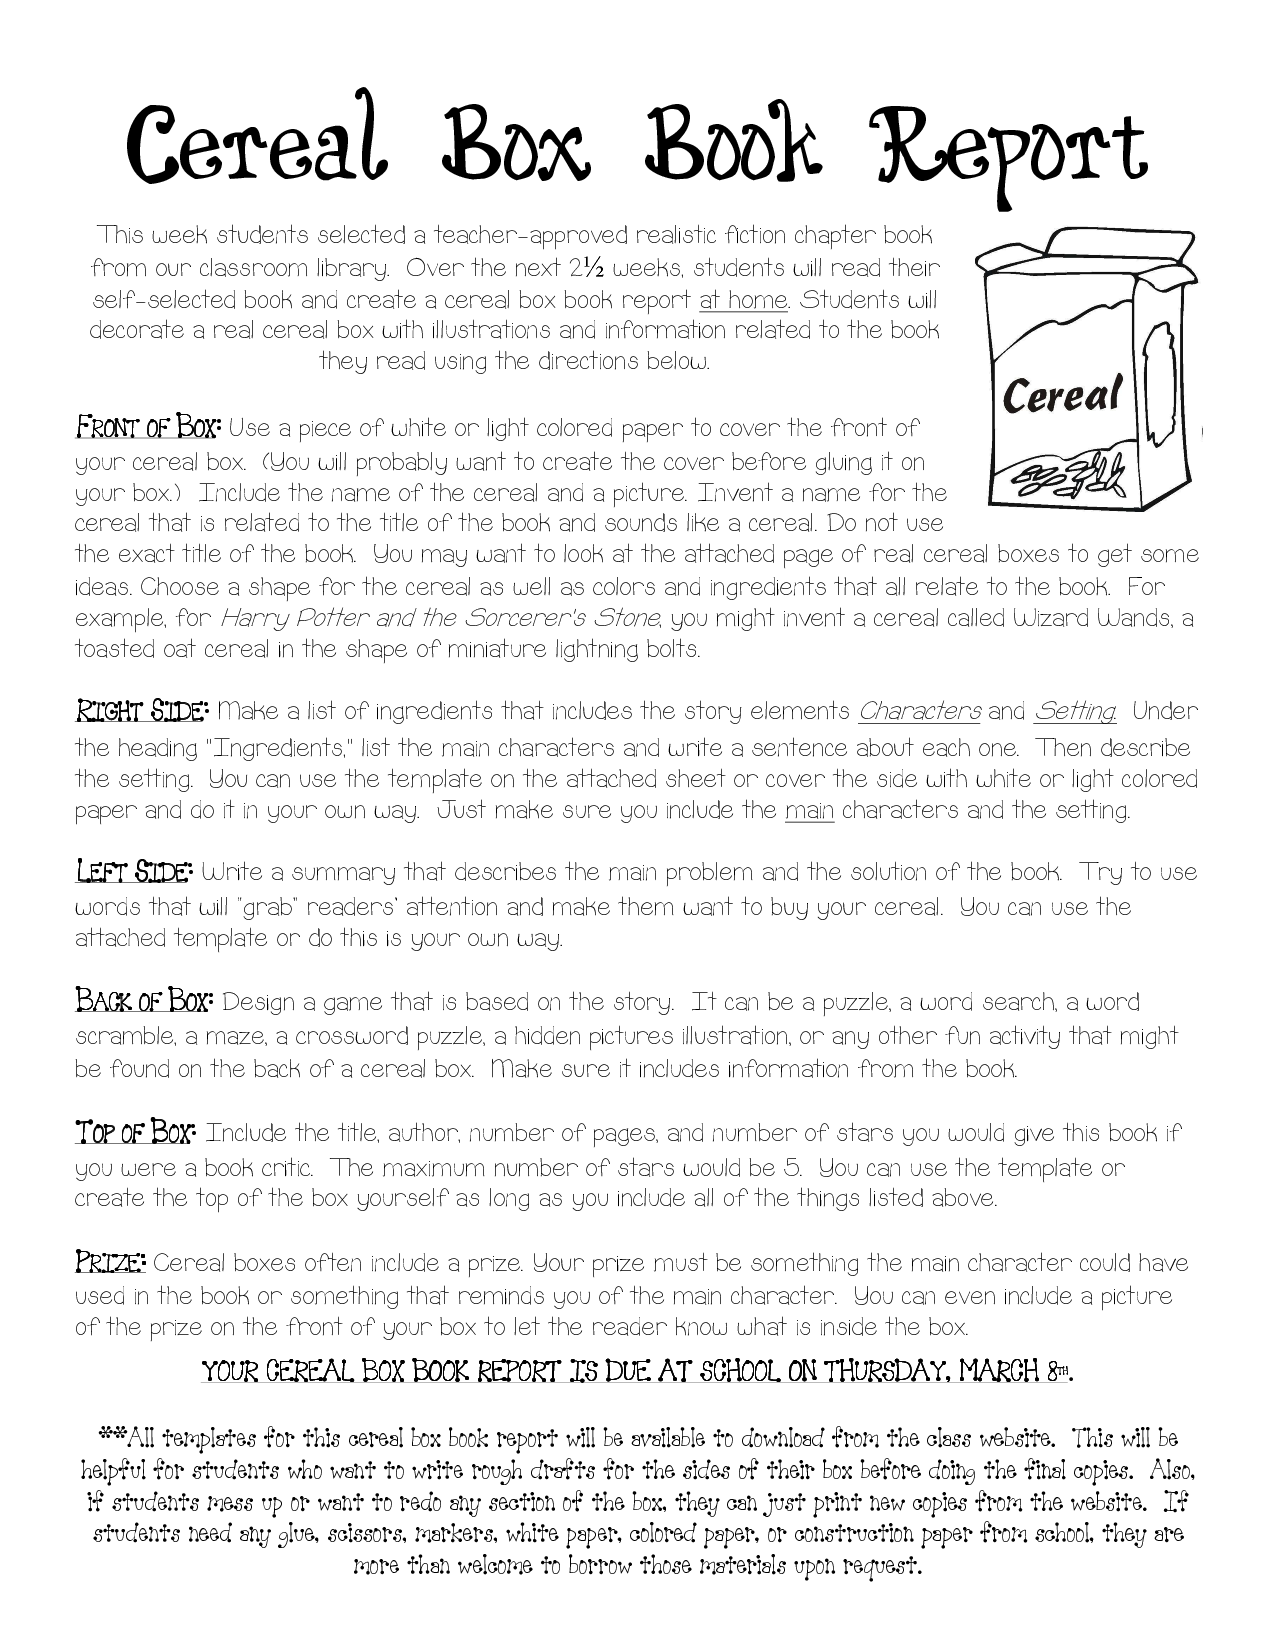 Cereal box book report instructions cereal box book report cereal box book report instructions cereal box book report template download as pdf ccuart Image collections